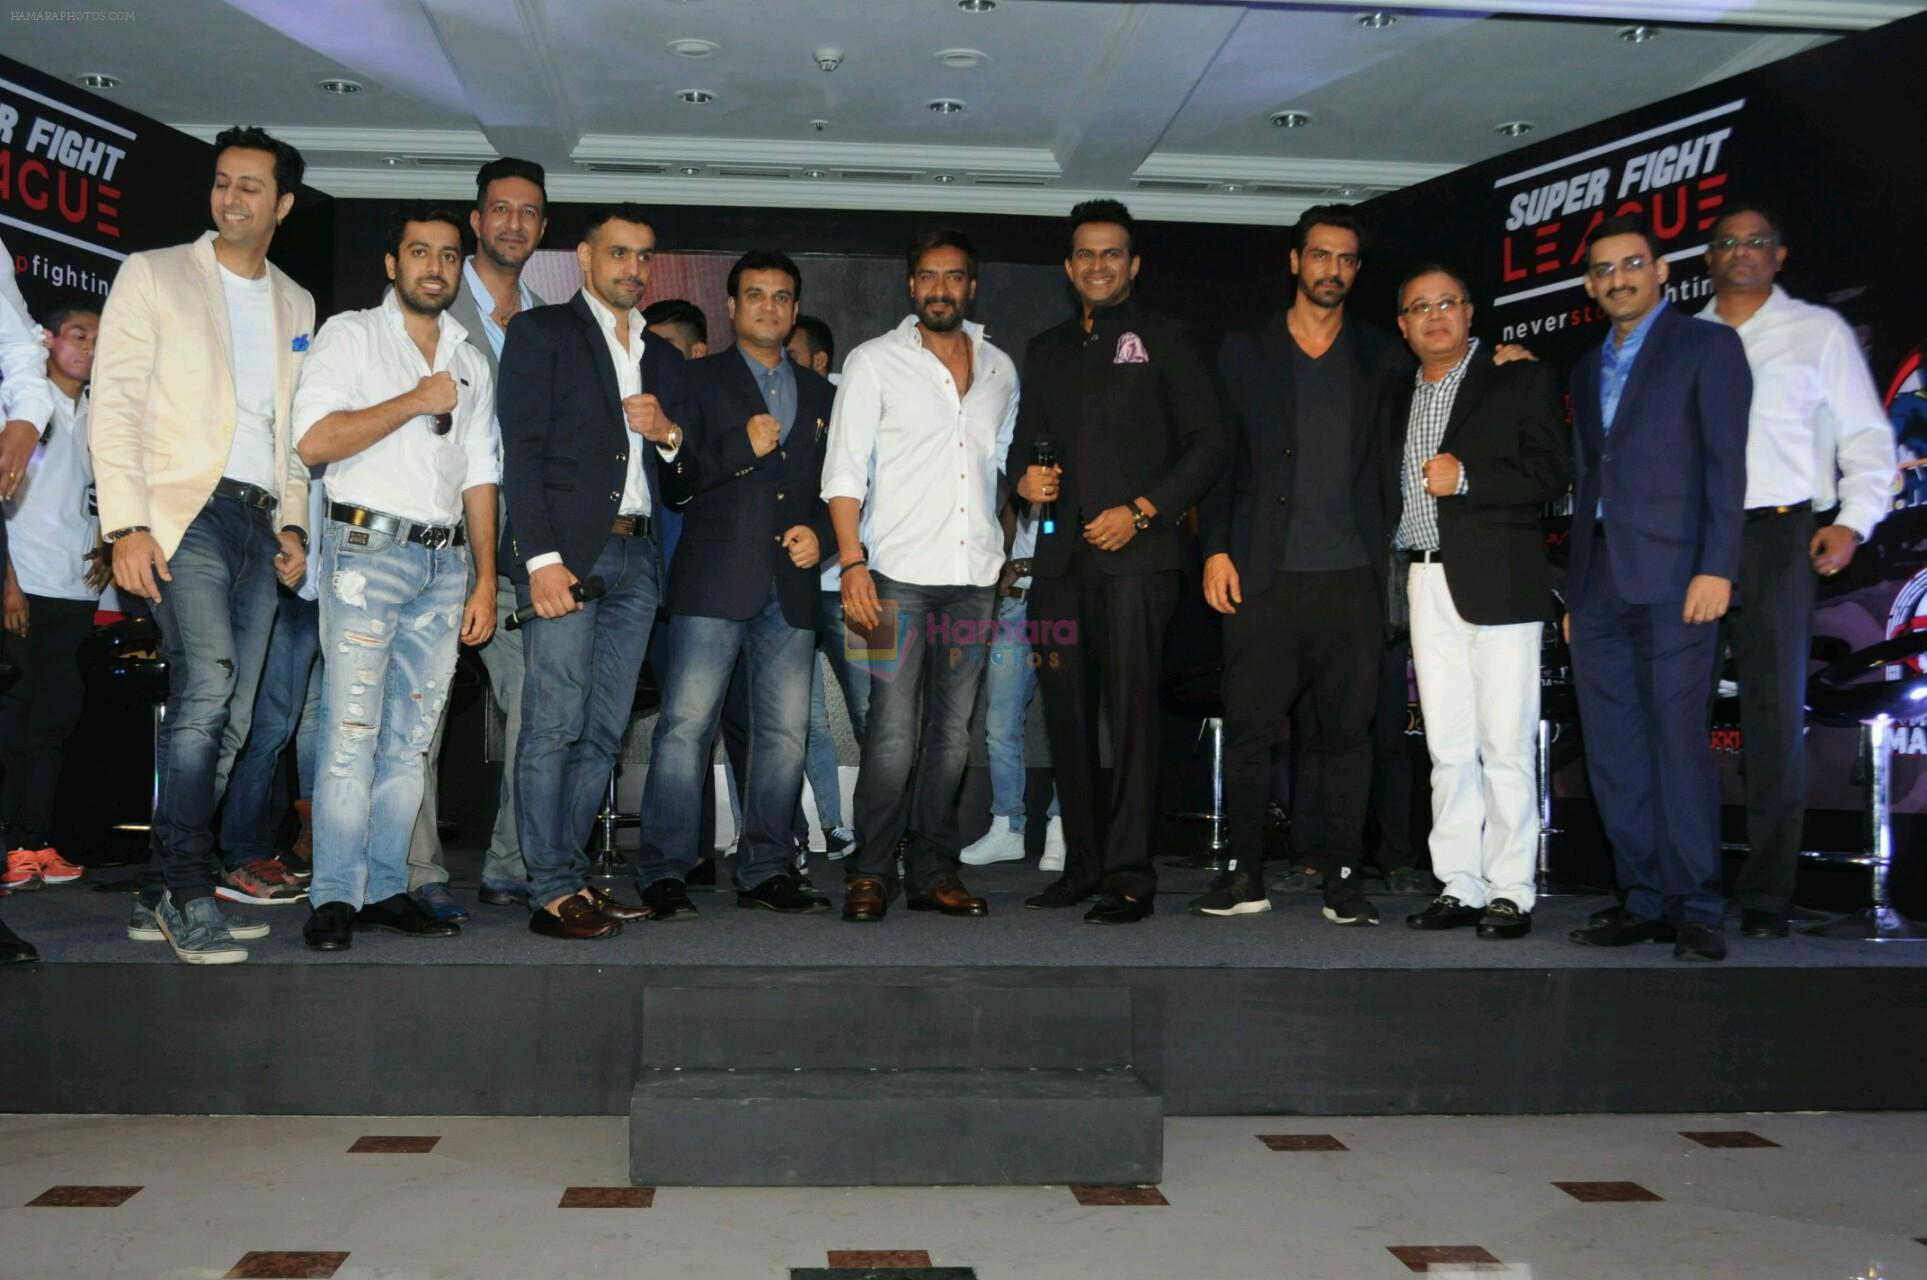 Ajay devgan and arjun rampal at Super Fight League event on 13th Jan 2017